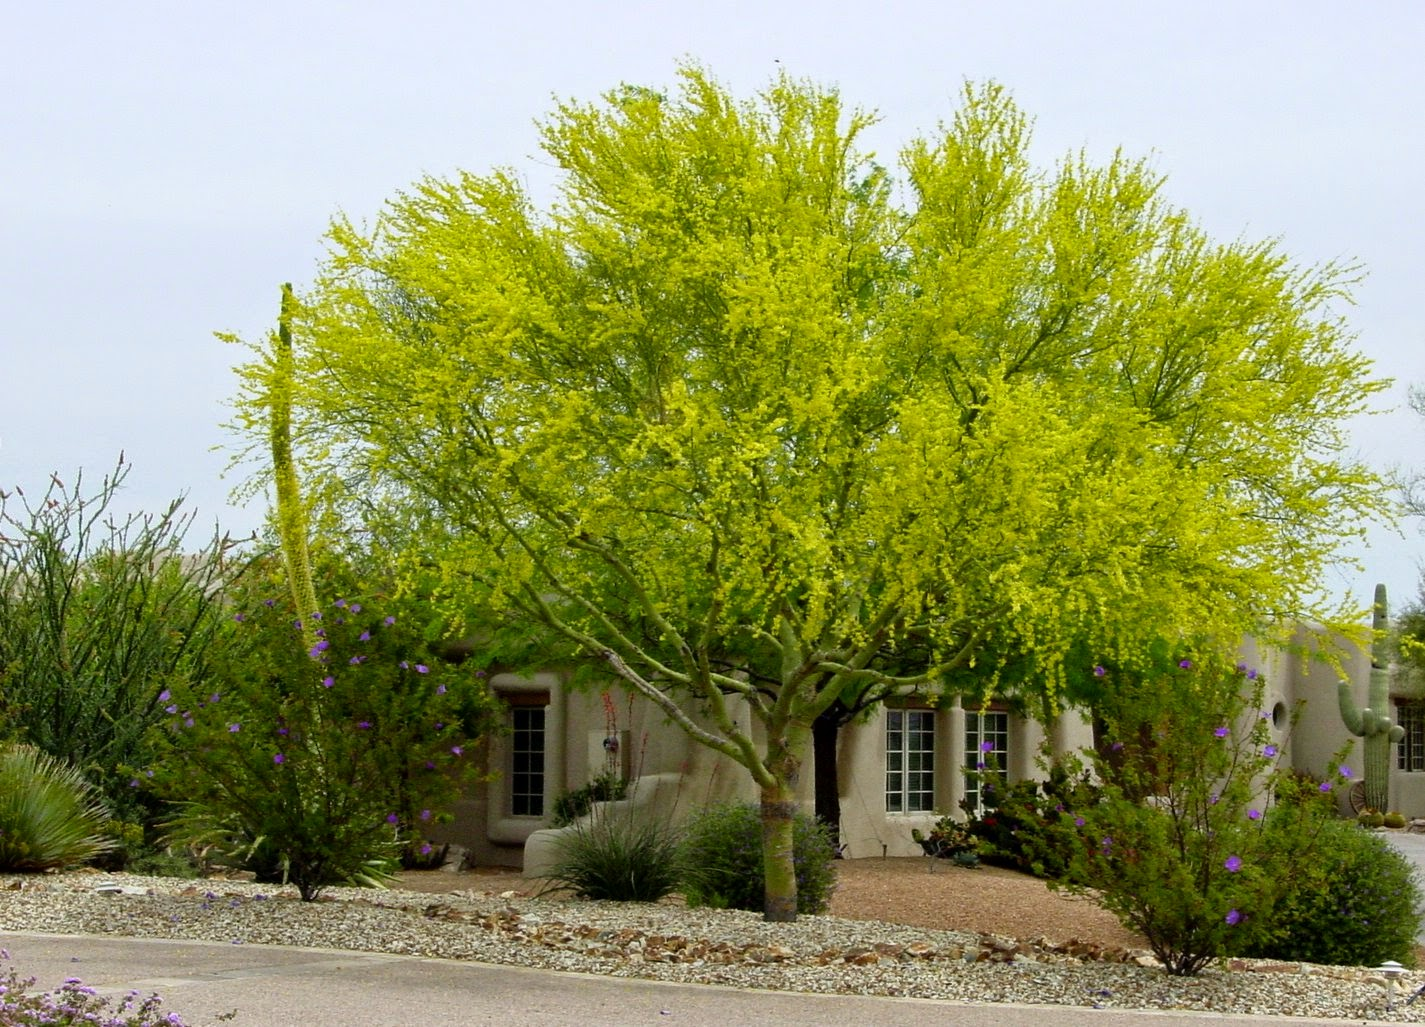 Landscaping With Palo Verde Trees : From a desert garden blue palo verde decorates the landscape